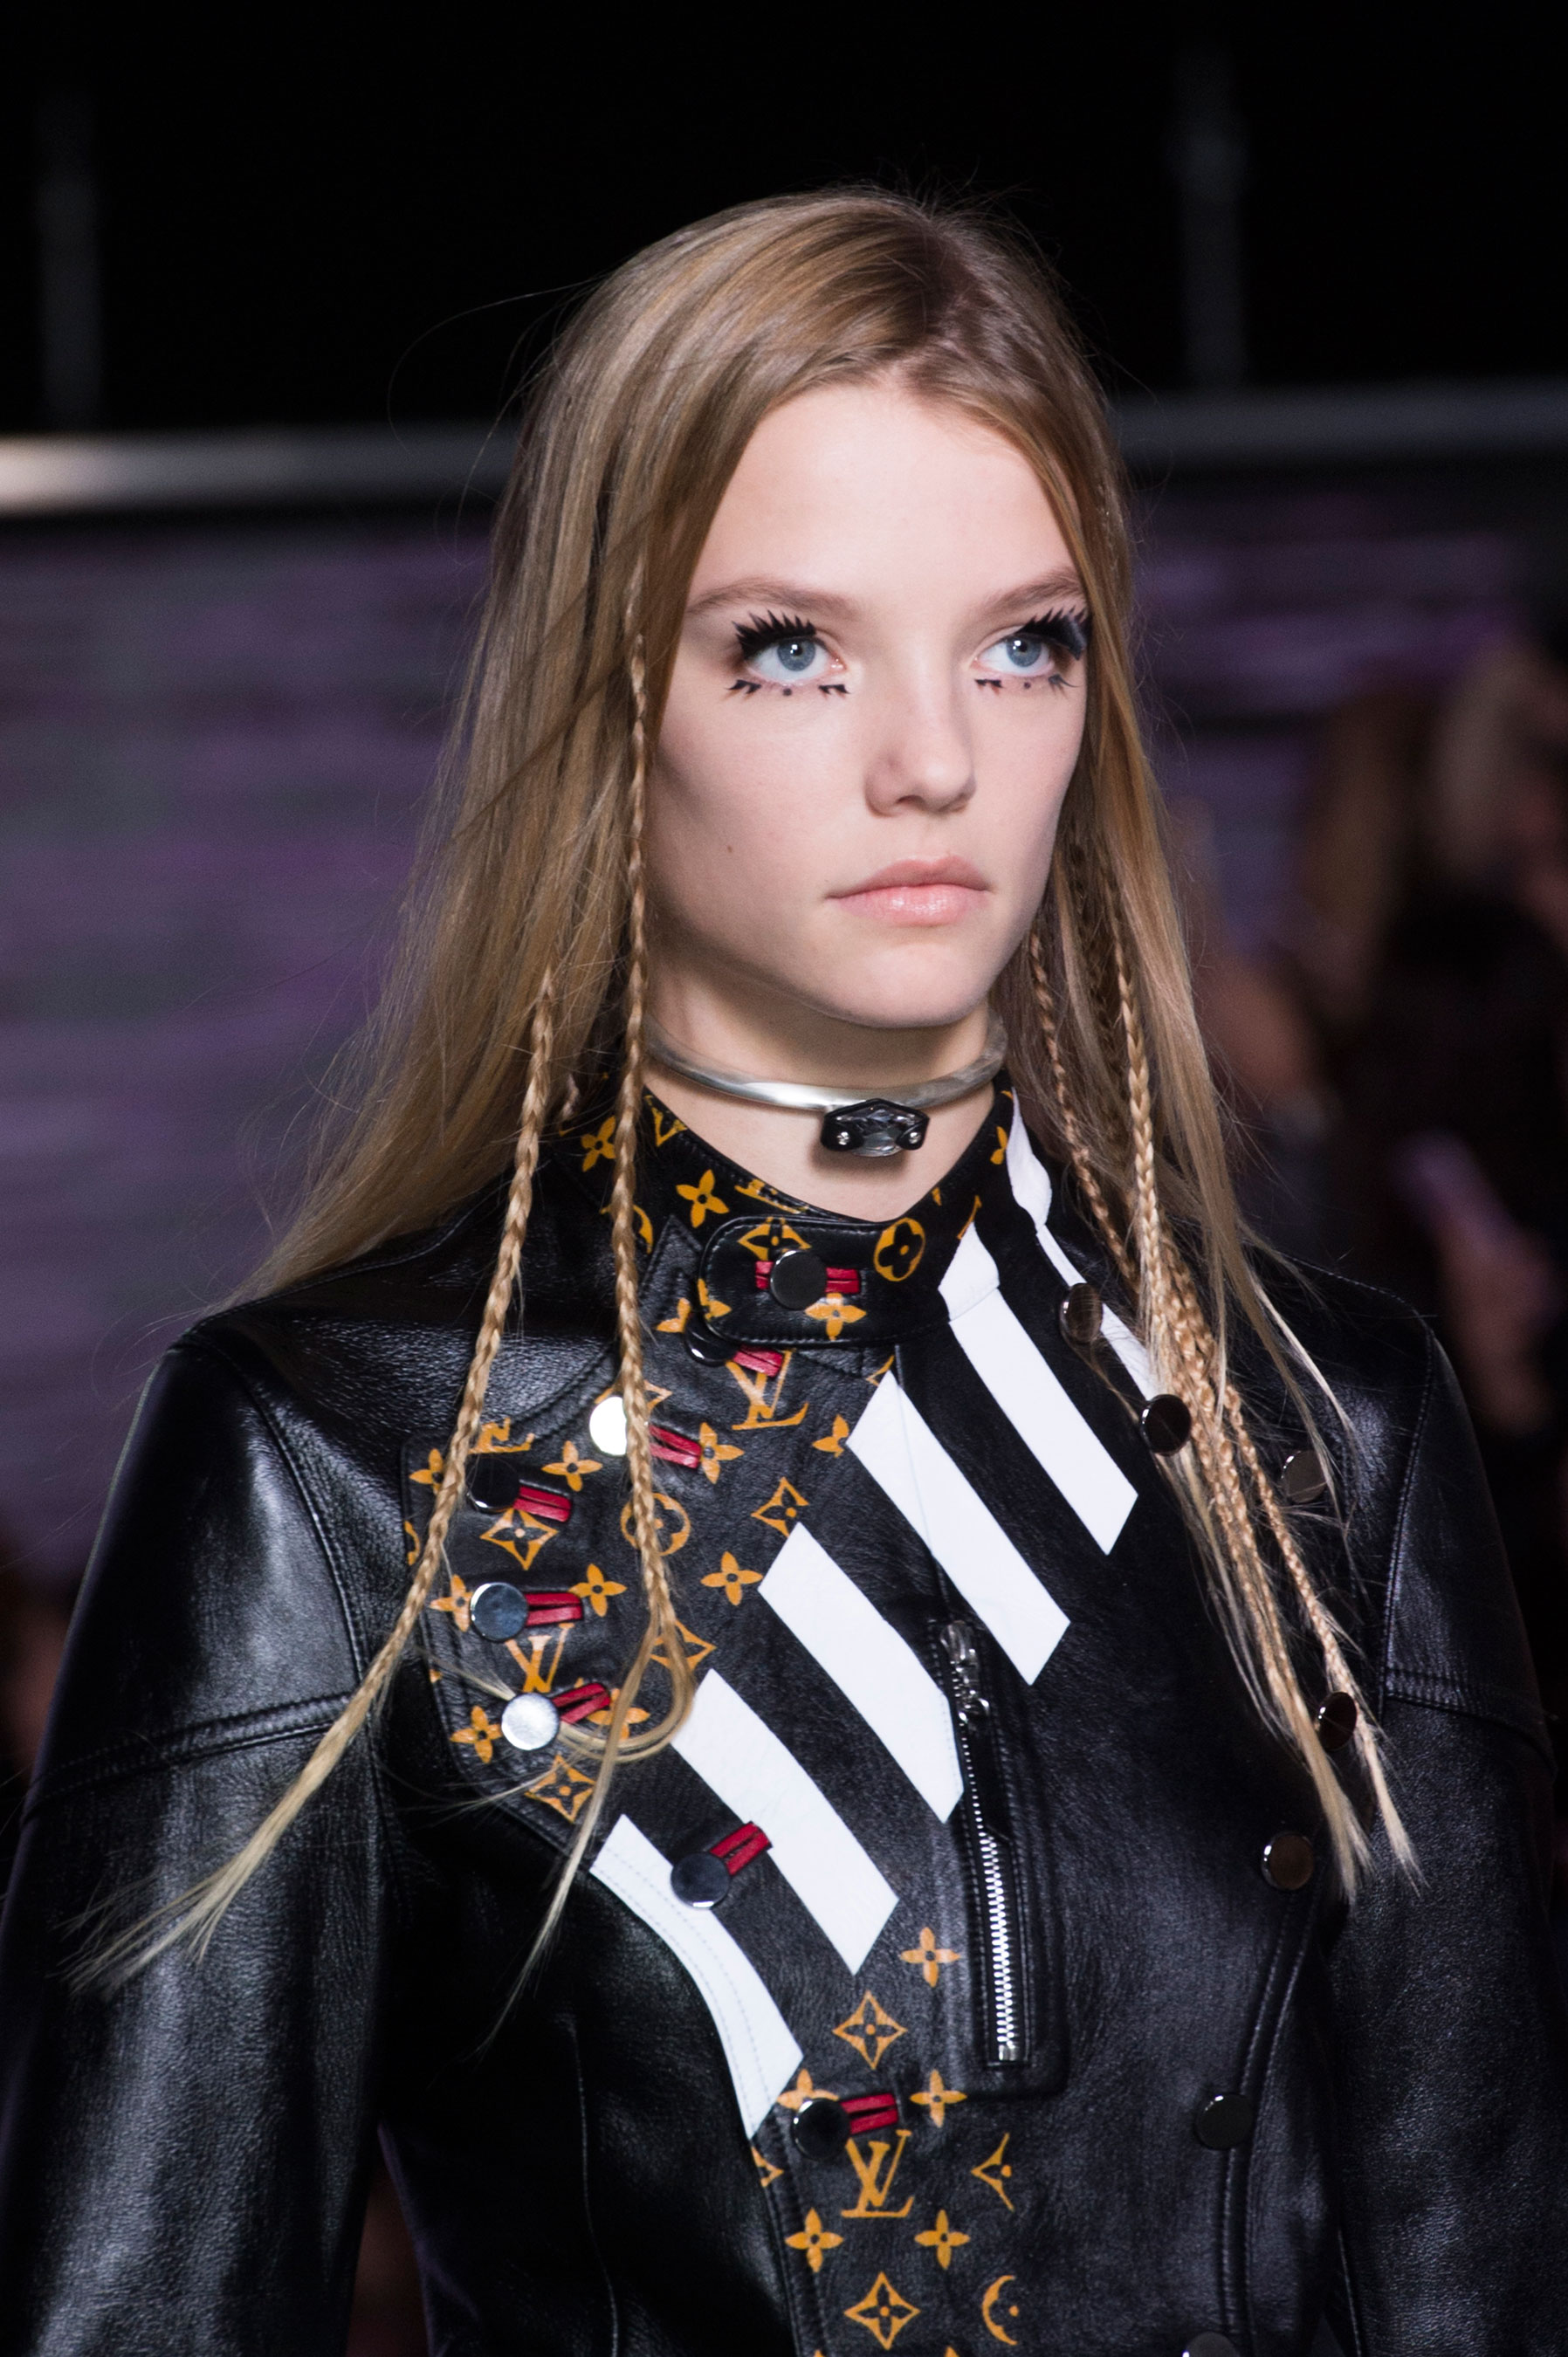 Louis-Vuitton-spring-2016-runway-beauty-fashion-show-the-impression-08